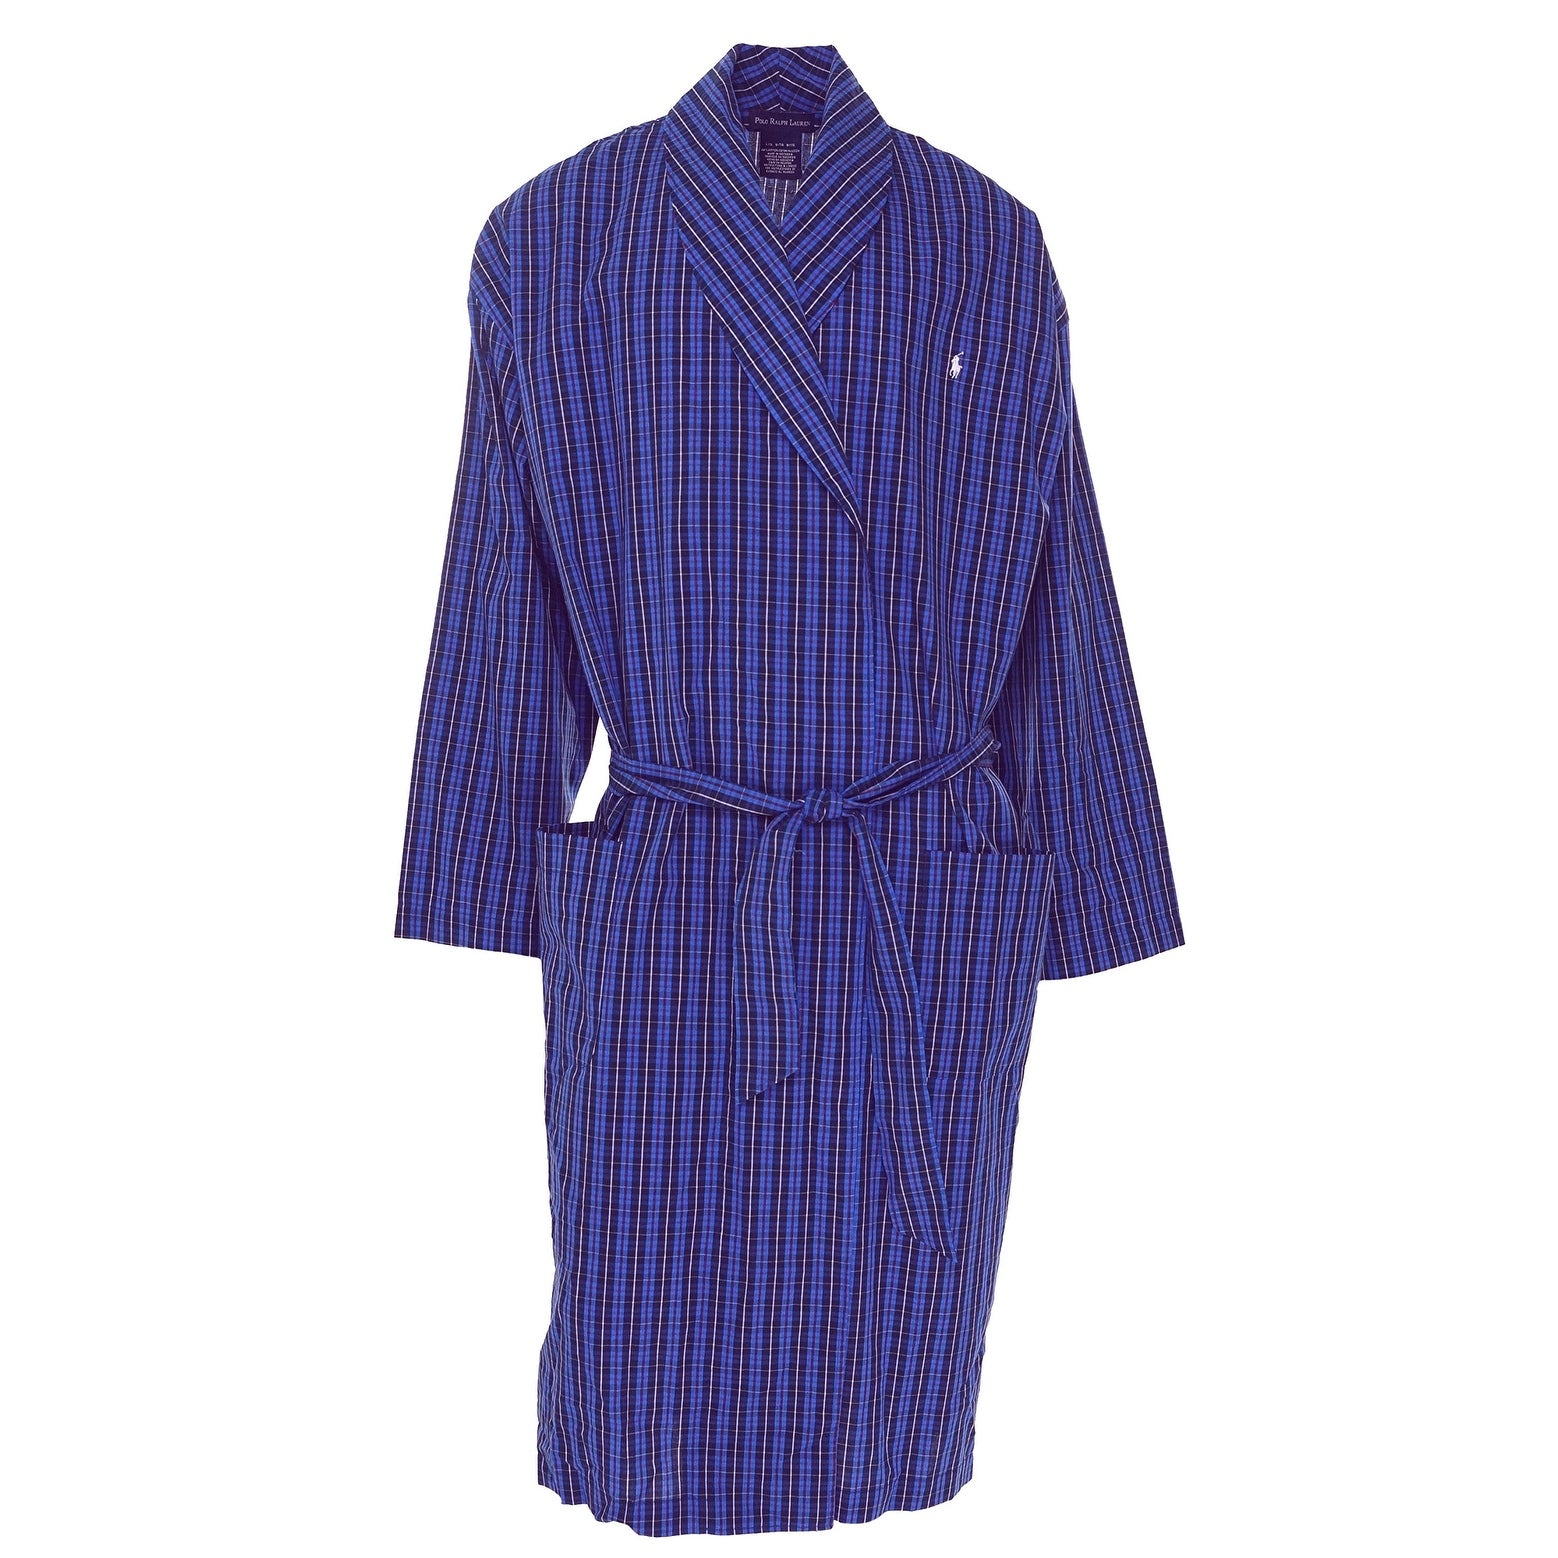 9d15eacd00ea Shop Polo Ralph Lauren NEW Blue Mens Large L / XLPlaid Sleepwear Woven Robe  - Free Shipping On Orders Over $45 - Overstock - 20899559